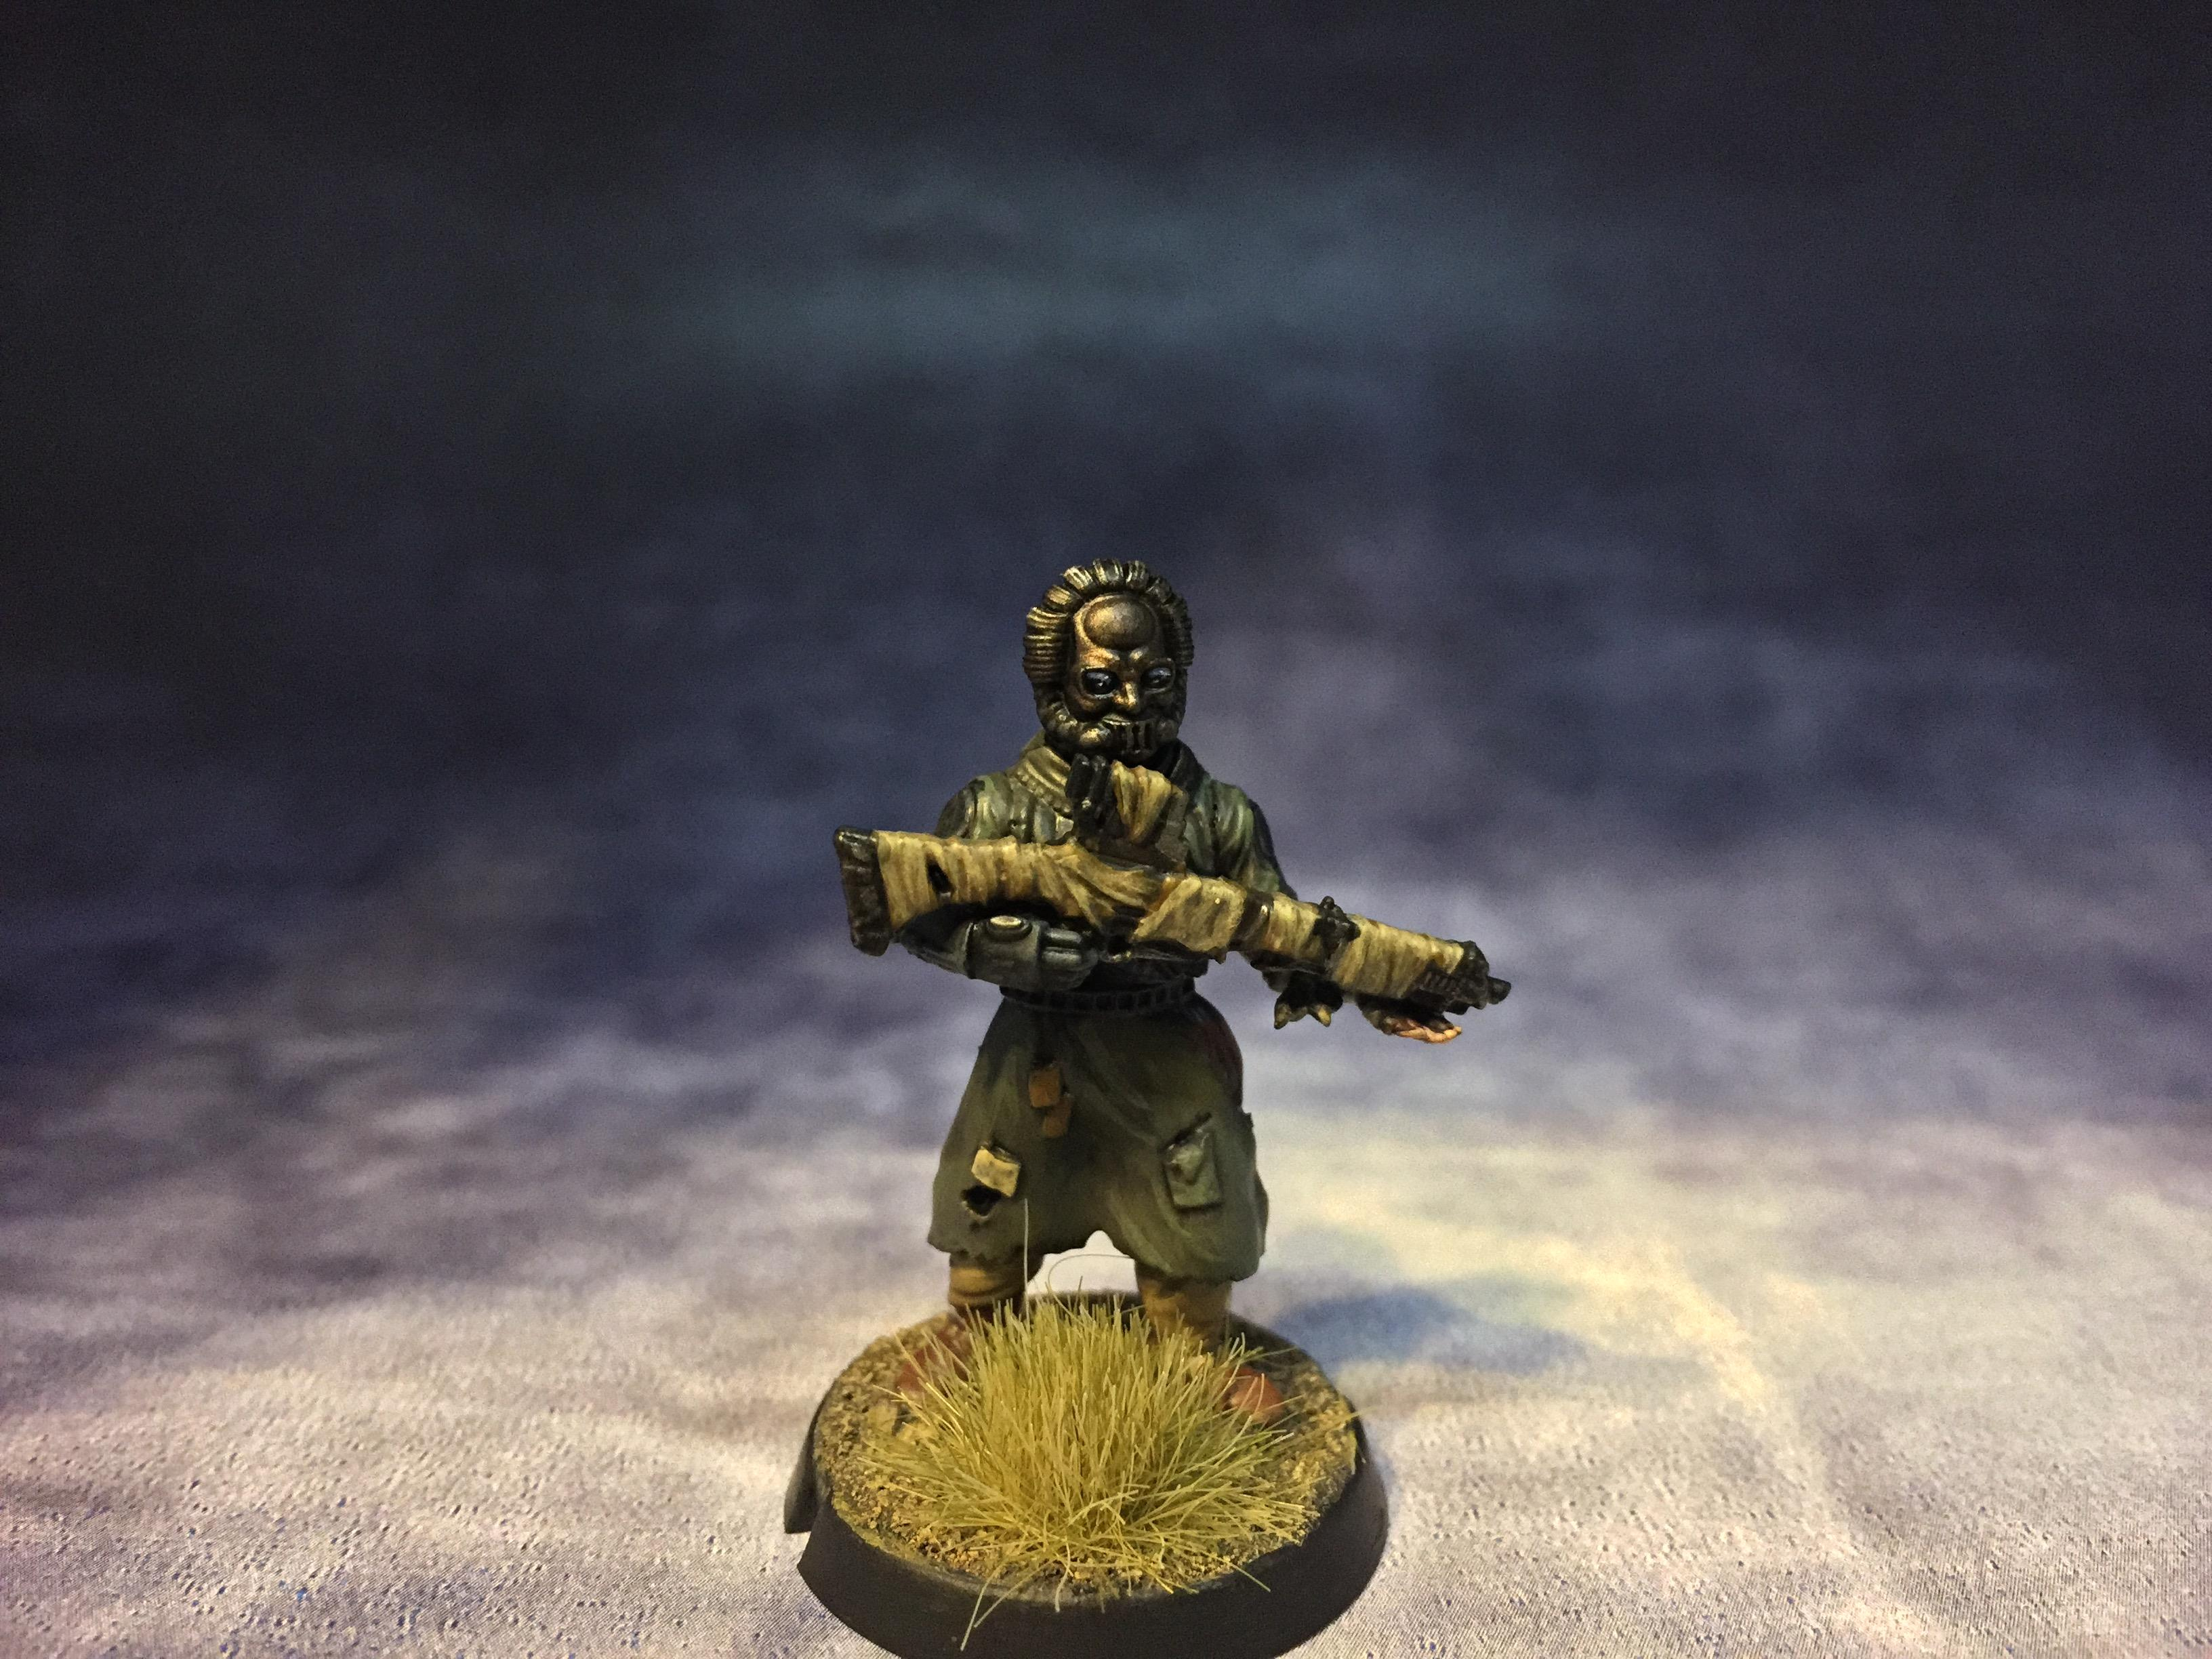 Barbarian, Broken, Forstgrave, January 2018, Kitbash, Maelstrom's Edge, Post-apoc, Postapocalyptic, Spiral Arms